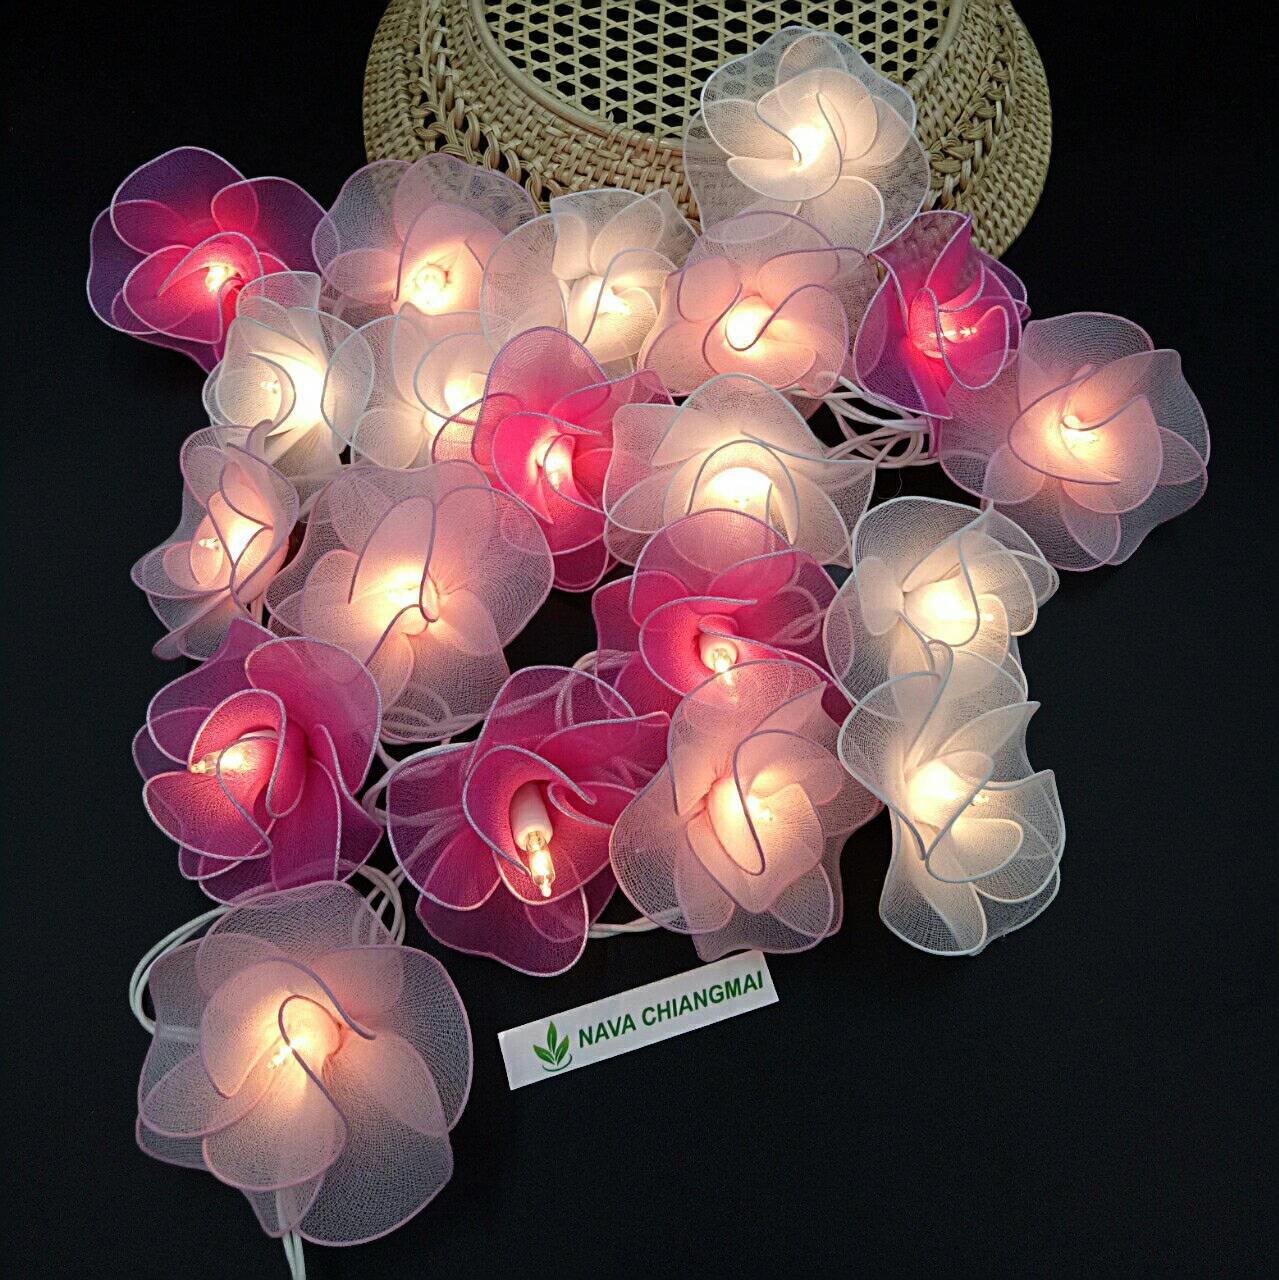 NAVA CHIANGMAI Thai Vintage 20 Flowers Romantic String Lights Plug In, Fairy Flora Decorated, Decorative Lights Wedding Gardens Party Valentine's Day Christmas Decoration (Pink & White) by NAVA CHIANGMAI String Lights